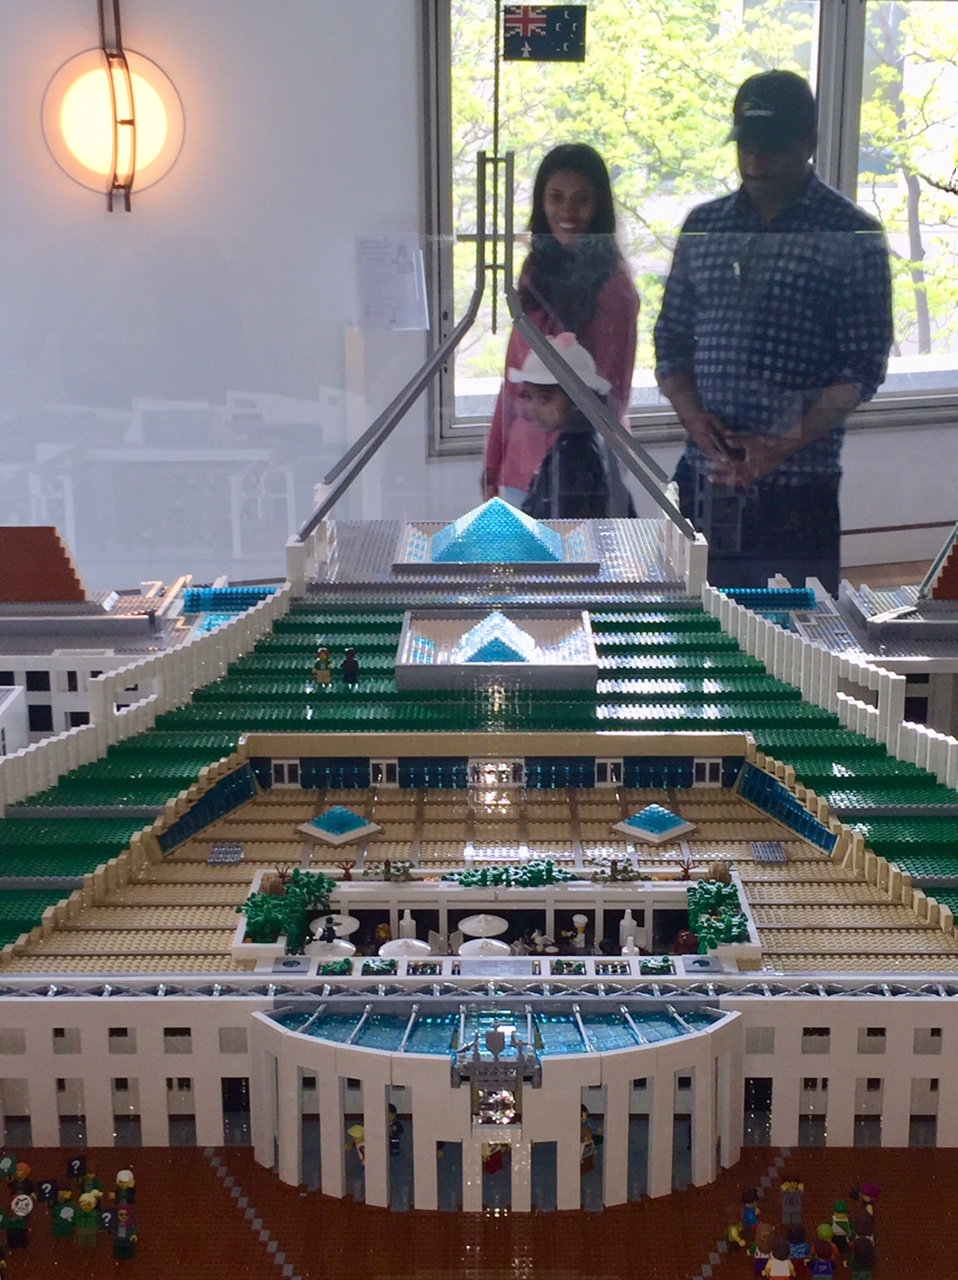 Lego Parliament House by Ryan McNaught